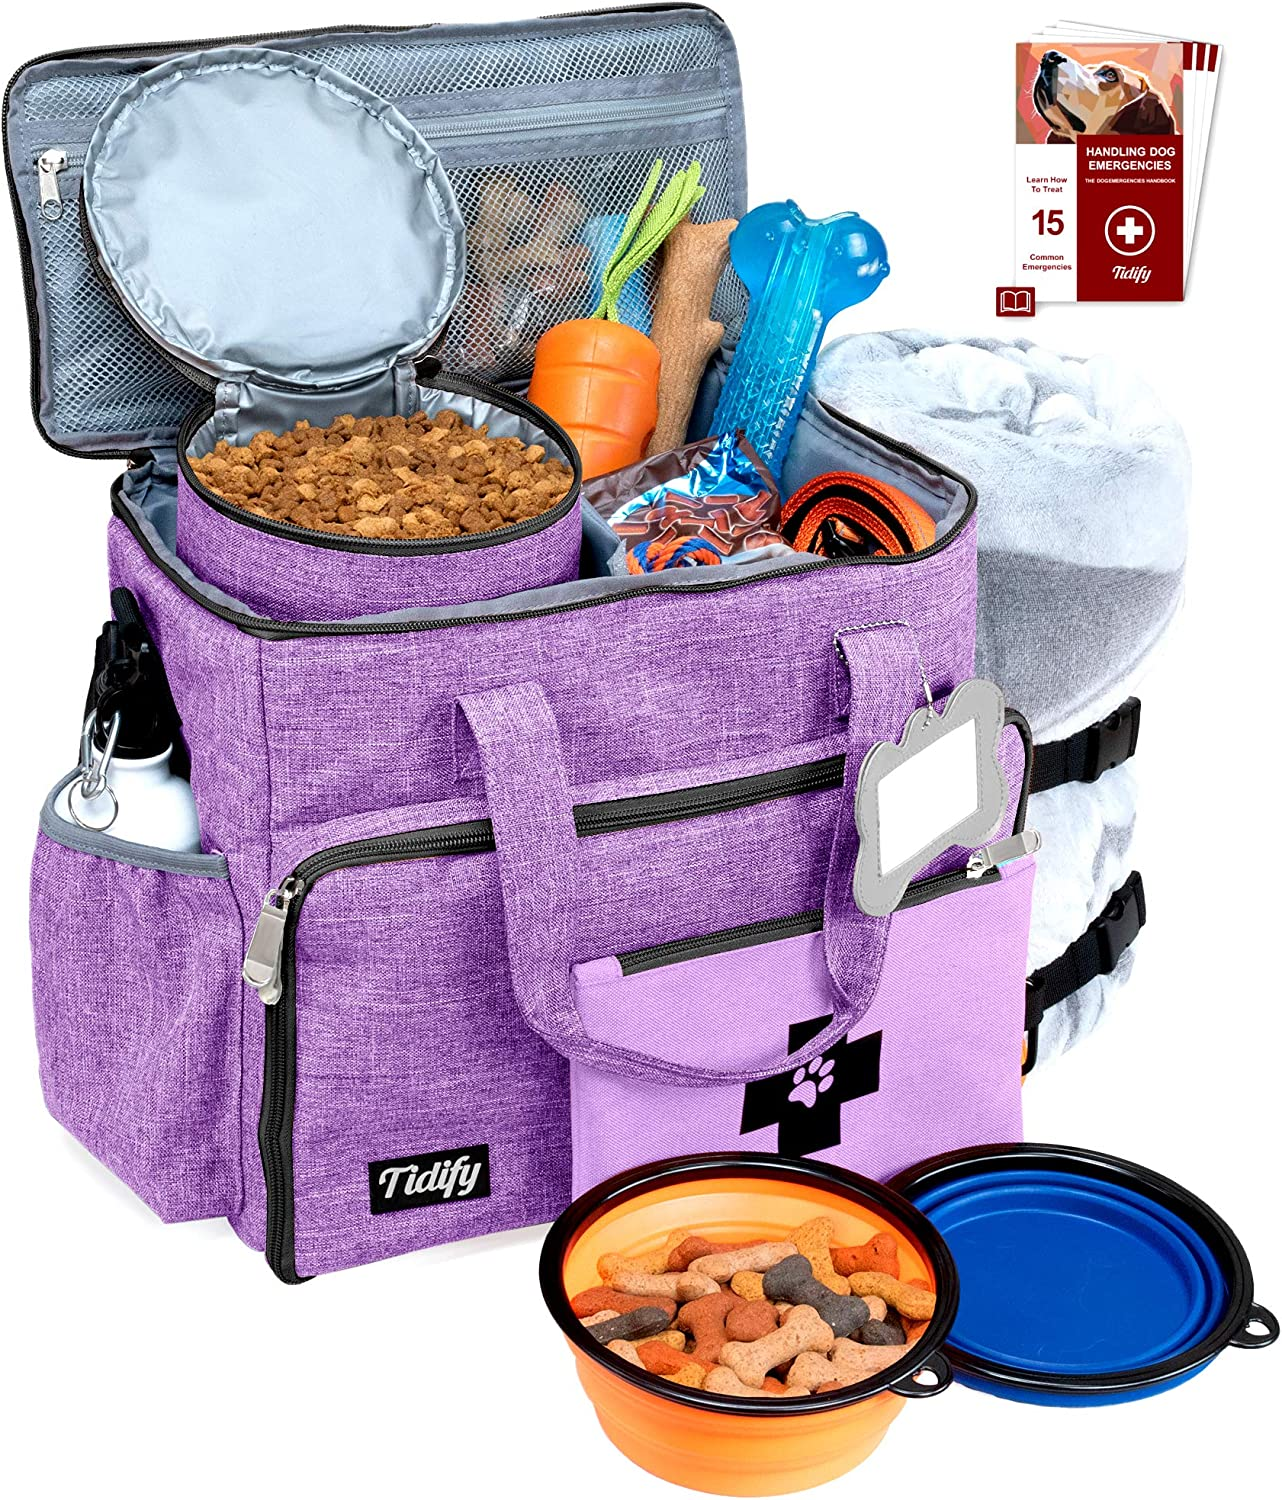 Dog Travel Bag Week Away/Overnight Accessories Organizer - Pet First Aid Pouch - Airline Approved 2 Food Storage Containers and Collapsible Bowls Water Resistant for Small, Medium & Large Dogs Purple